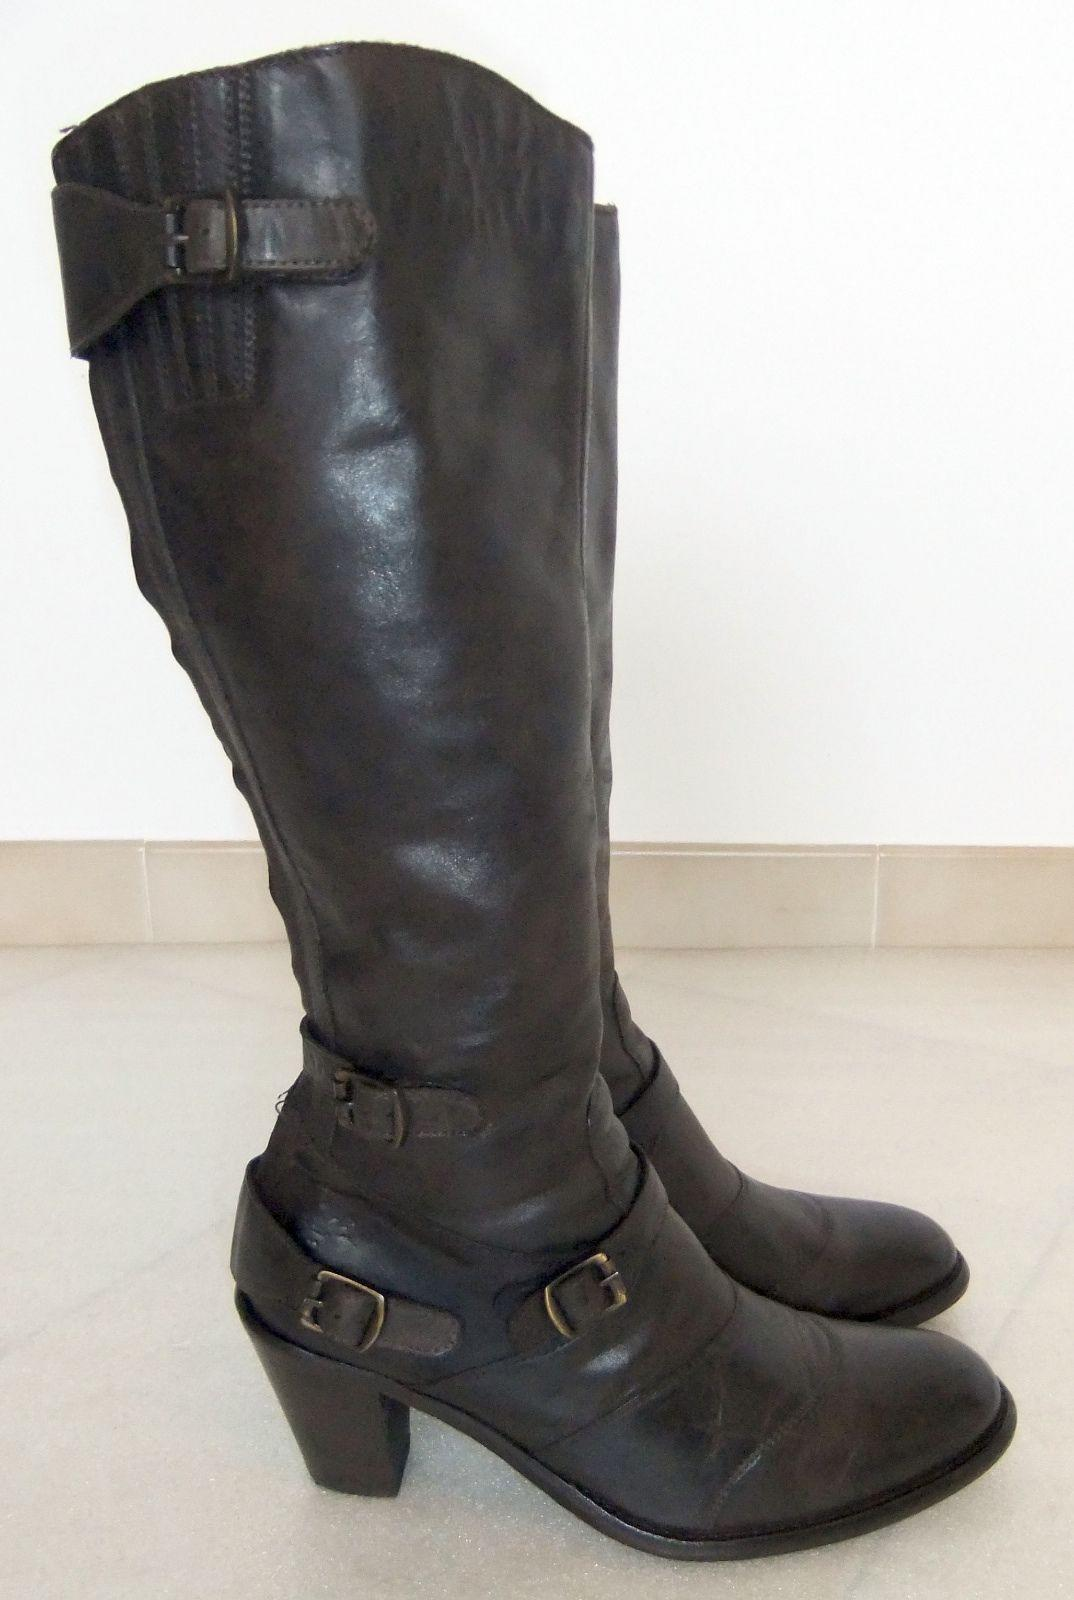 temor Leopardo todo lo mejor  BELSTAFF TRIALMASTER LADIES BROWN LEATHER KNEE-HIGH BOOTS-SIZE 39-USED-VERY  CHIC-FREE POSTAGE EUROPE